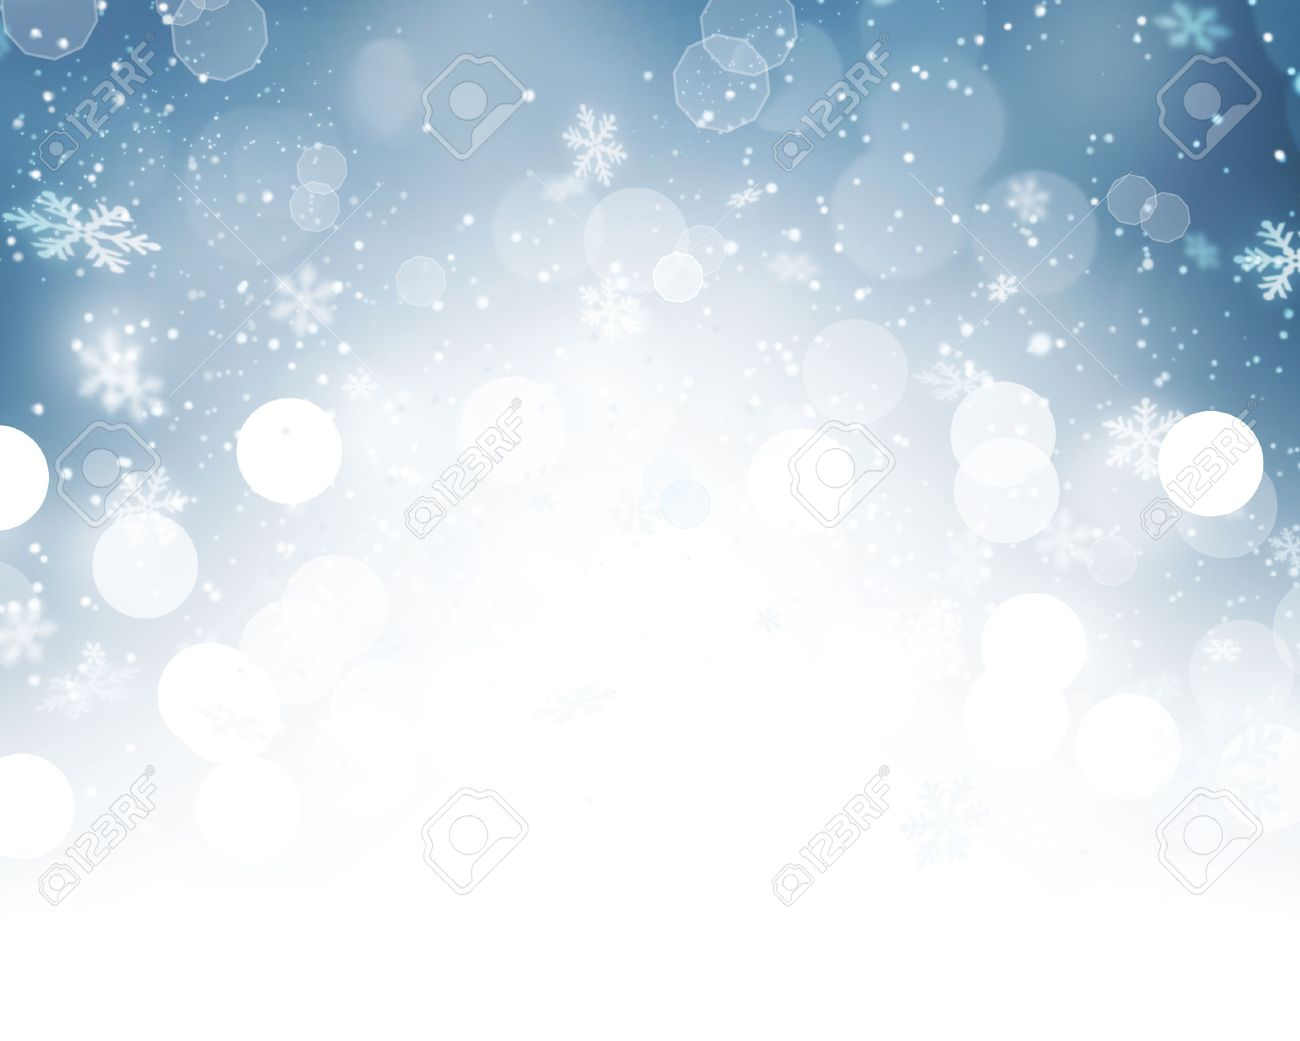 Holiday Christmas Background.Christmas Background Winter Holiday Snow Background